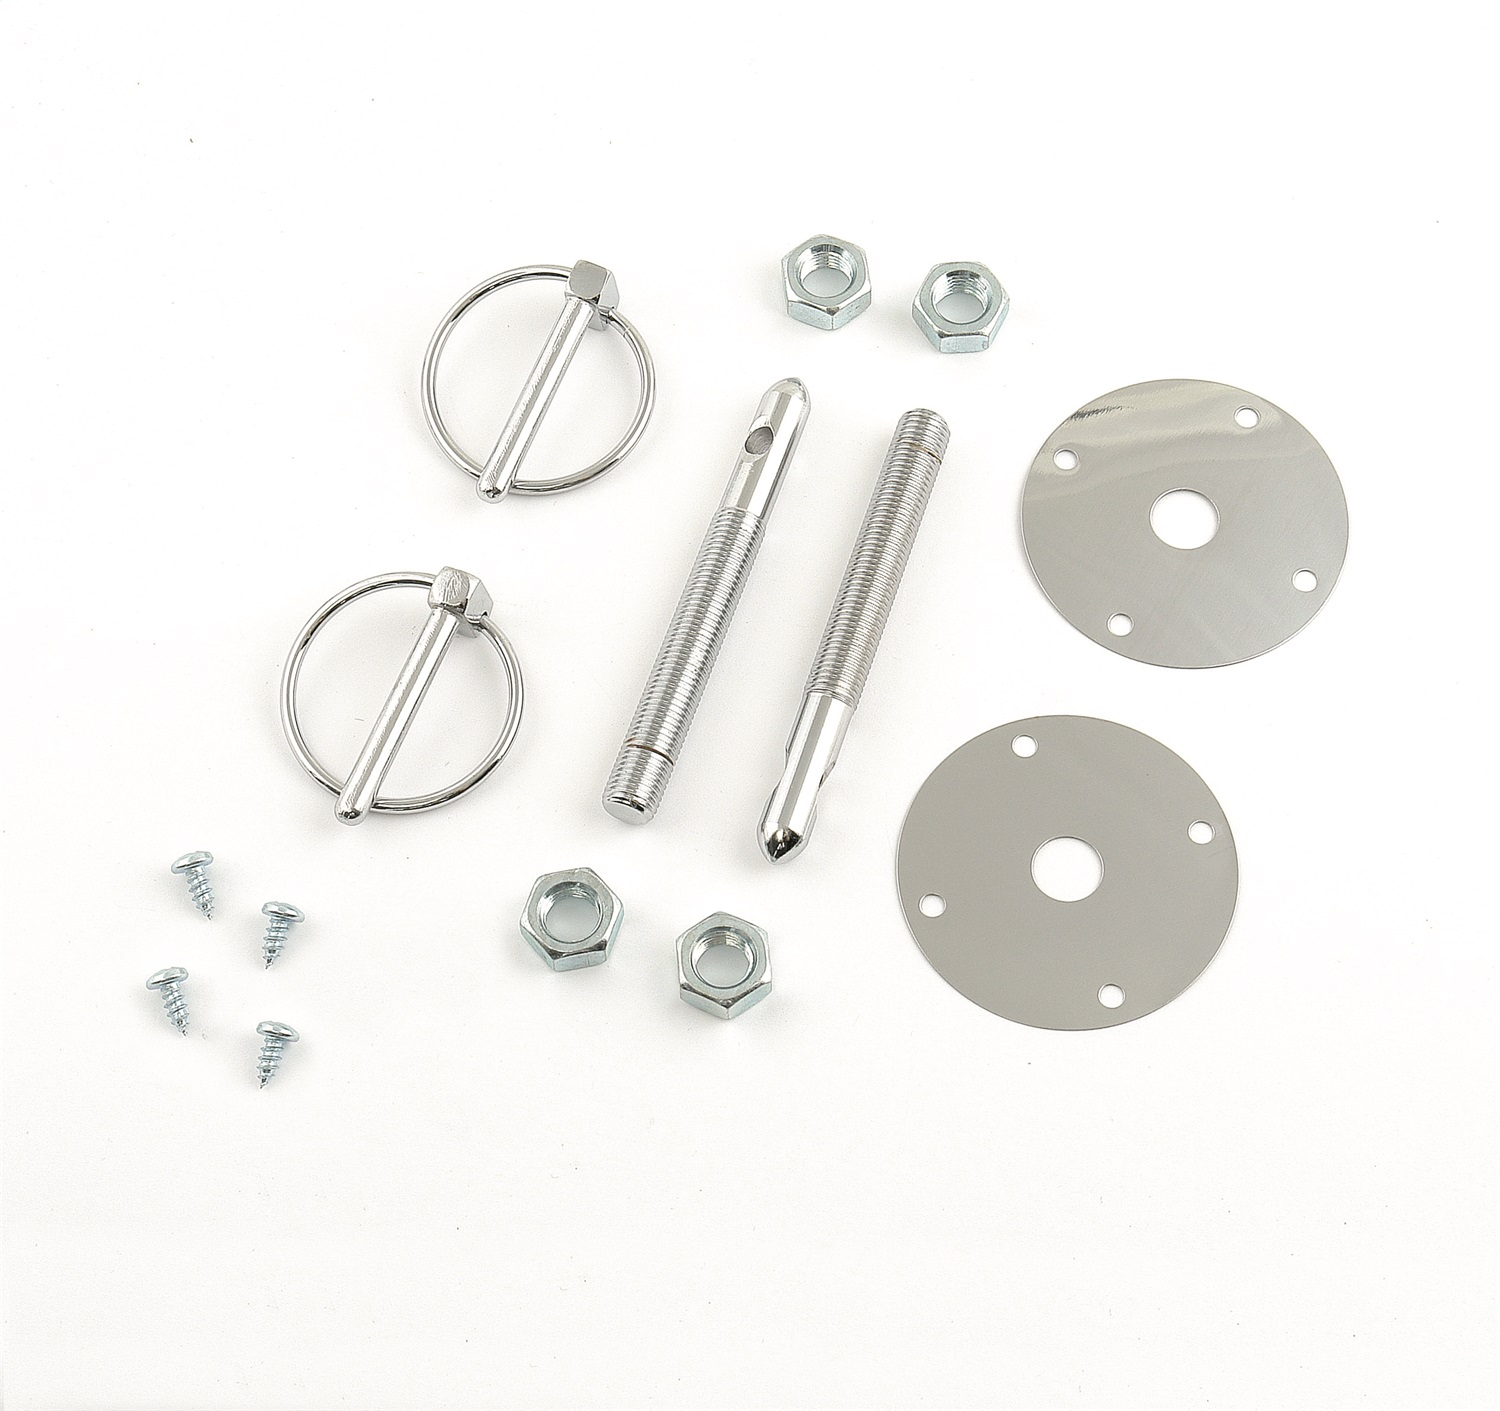 Mr. Gasket Hood Pin (1017)